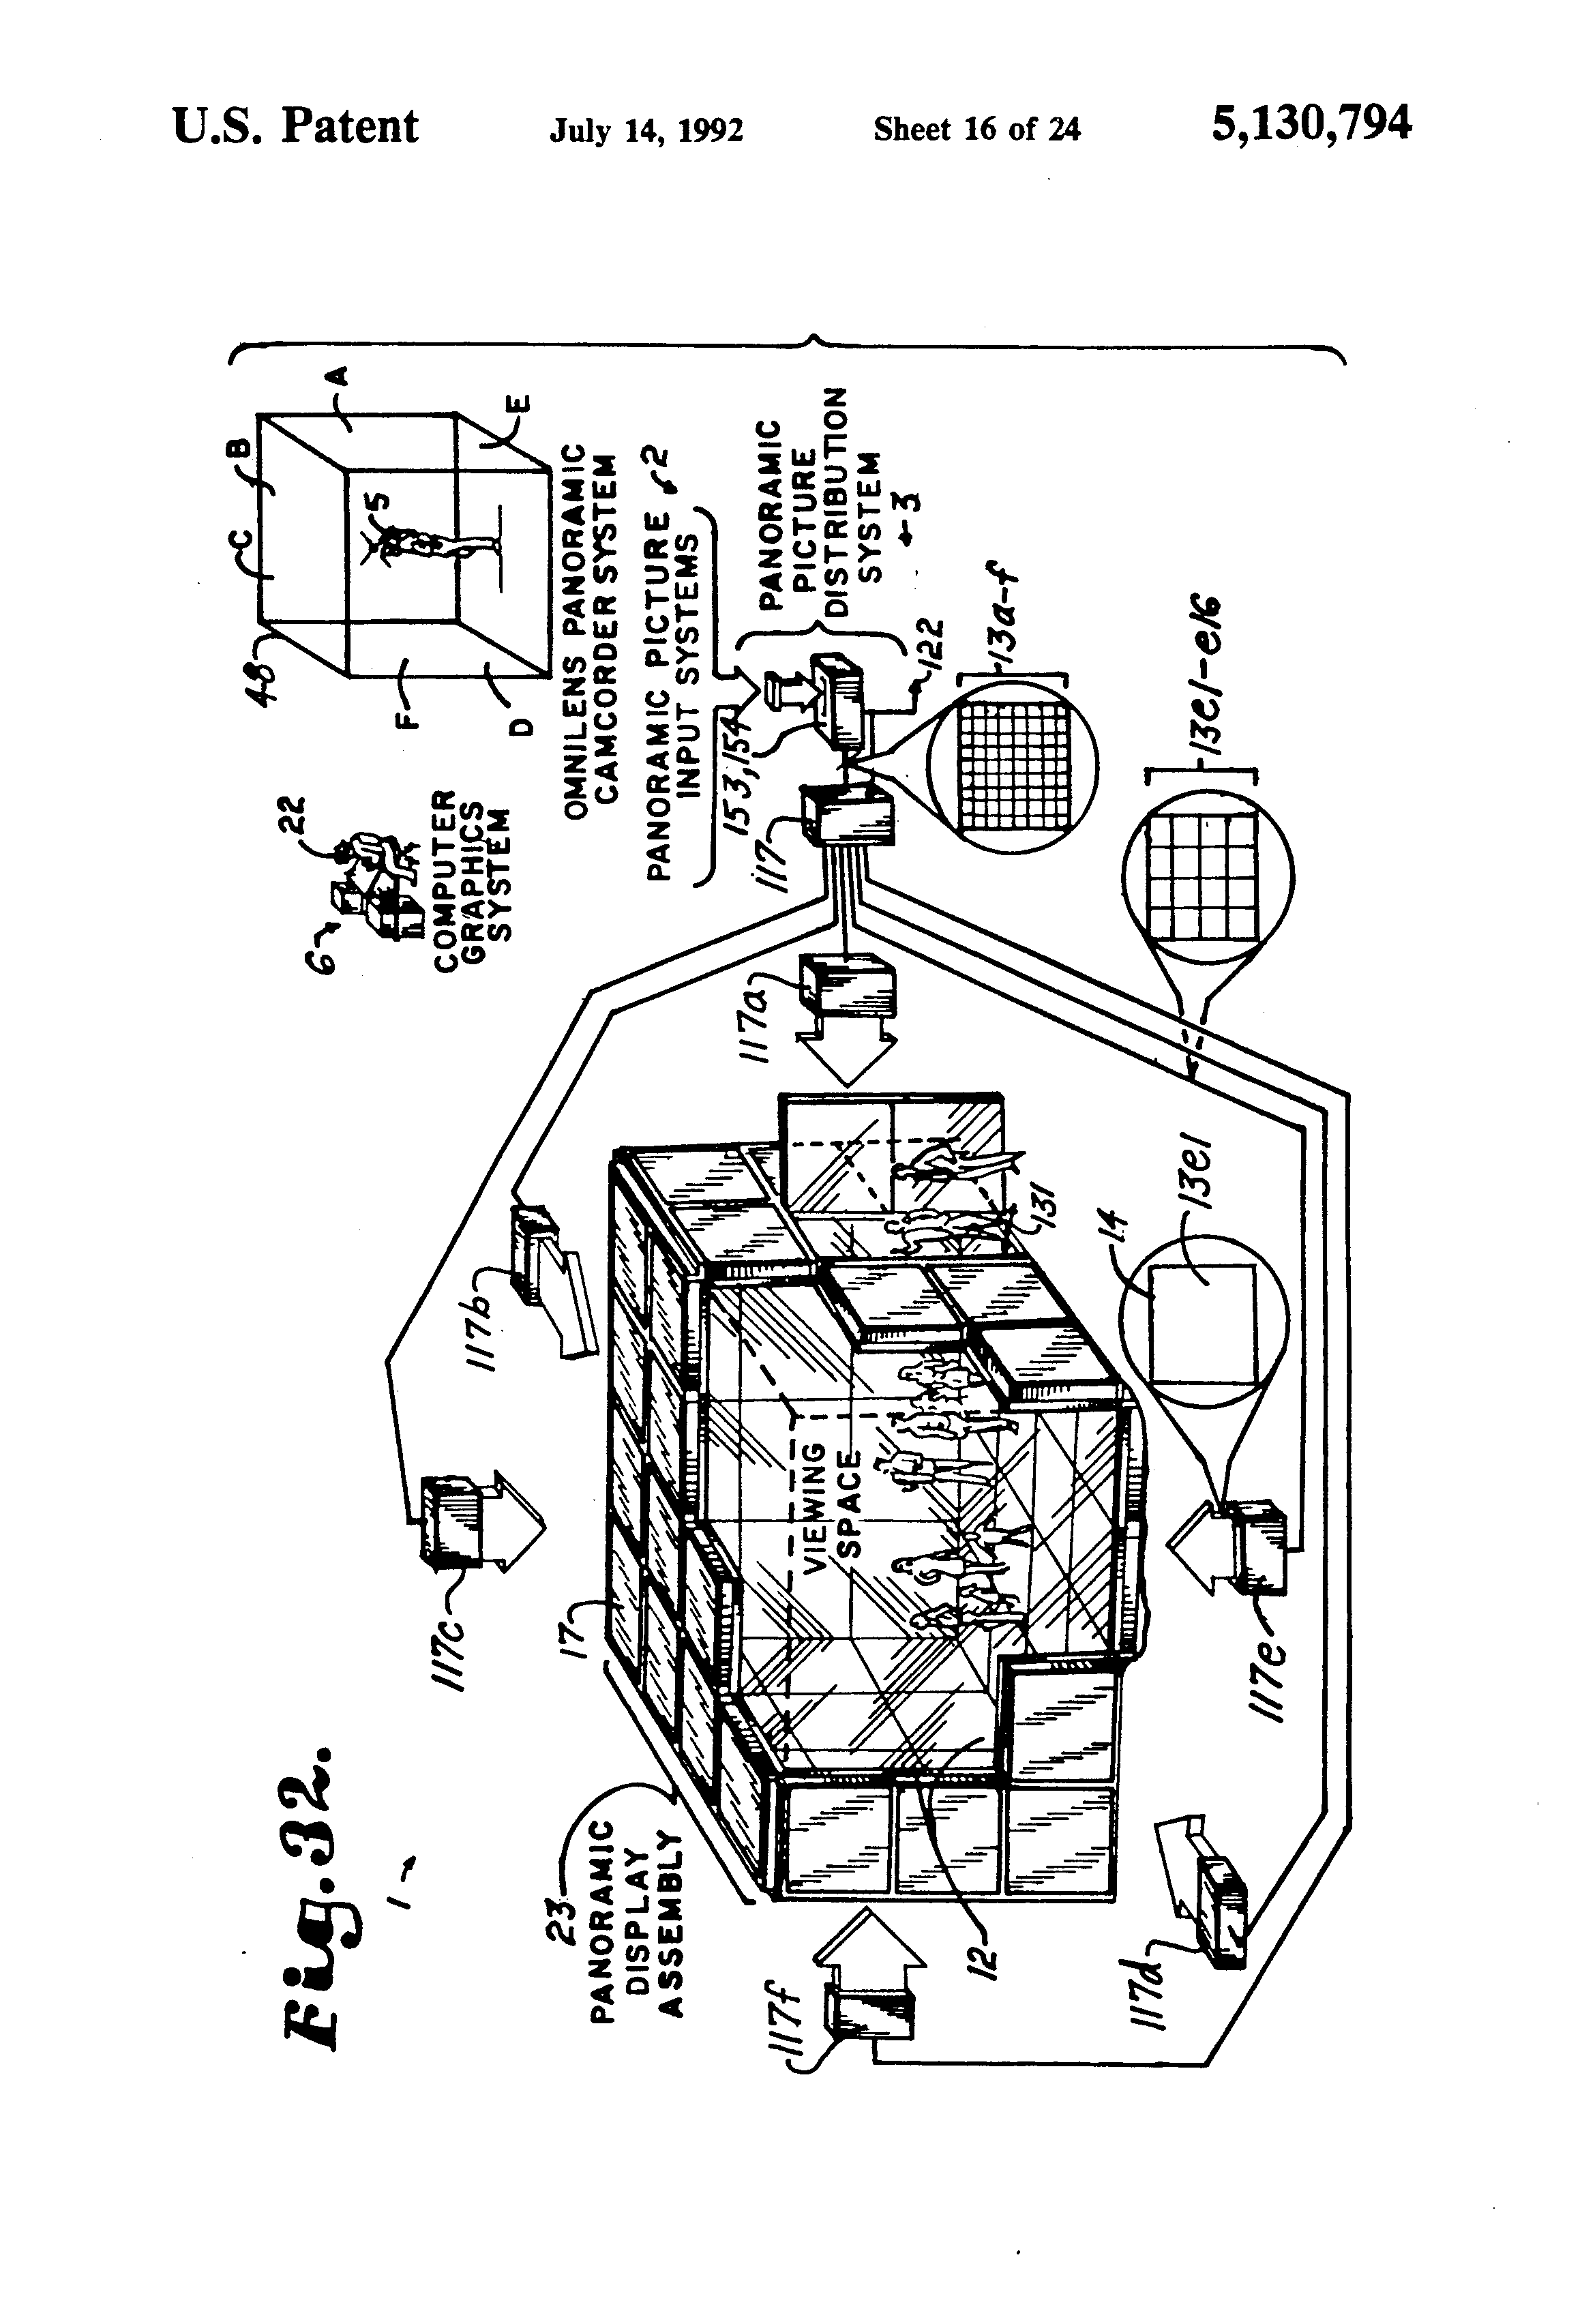 Fiatagri F 130 Manual Datsun Radio Wiring Array Patent Us5130794 Panoramic Display System Google Patents Rh